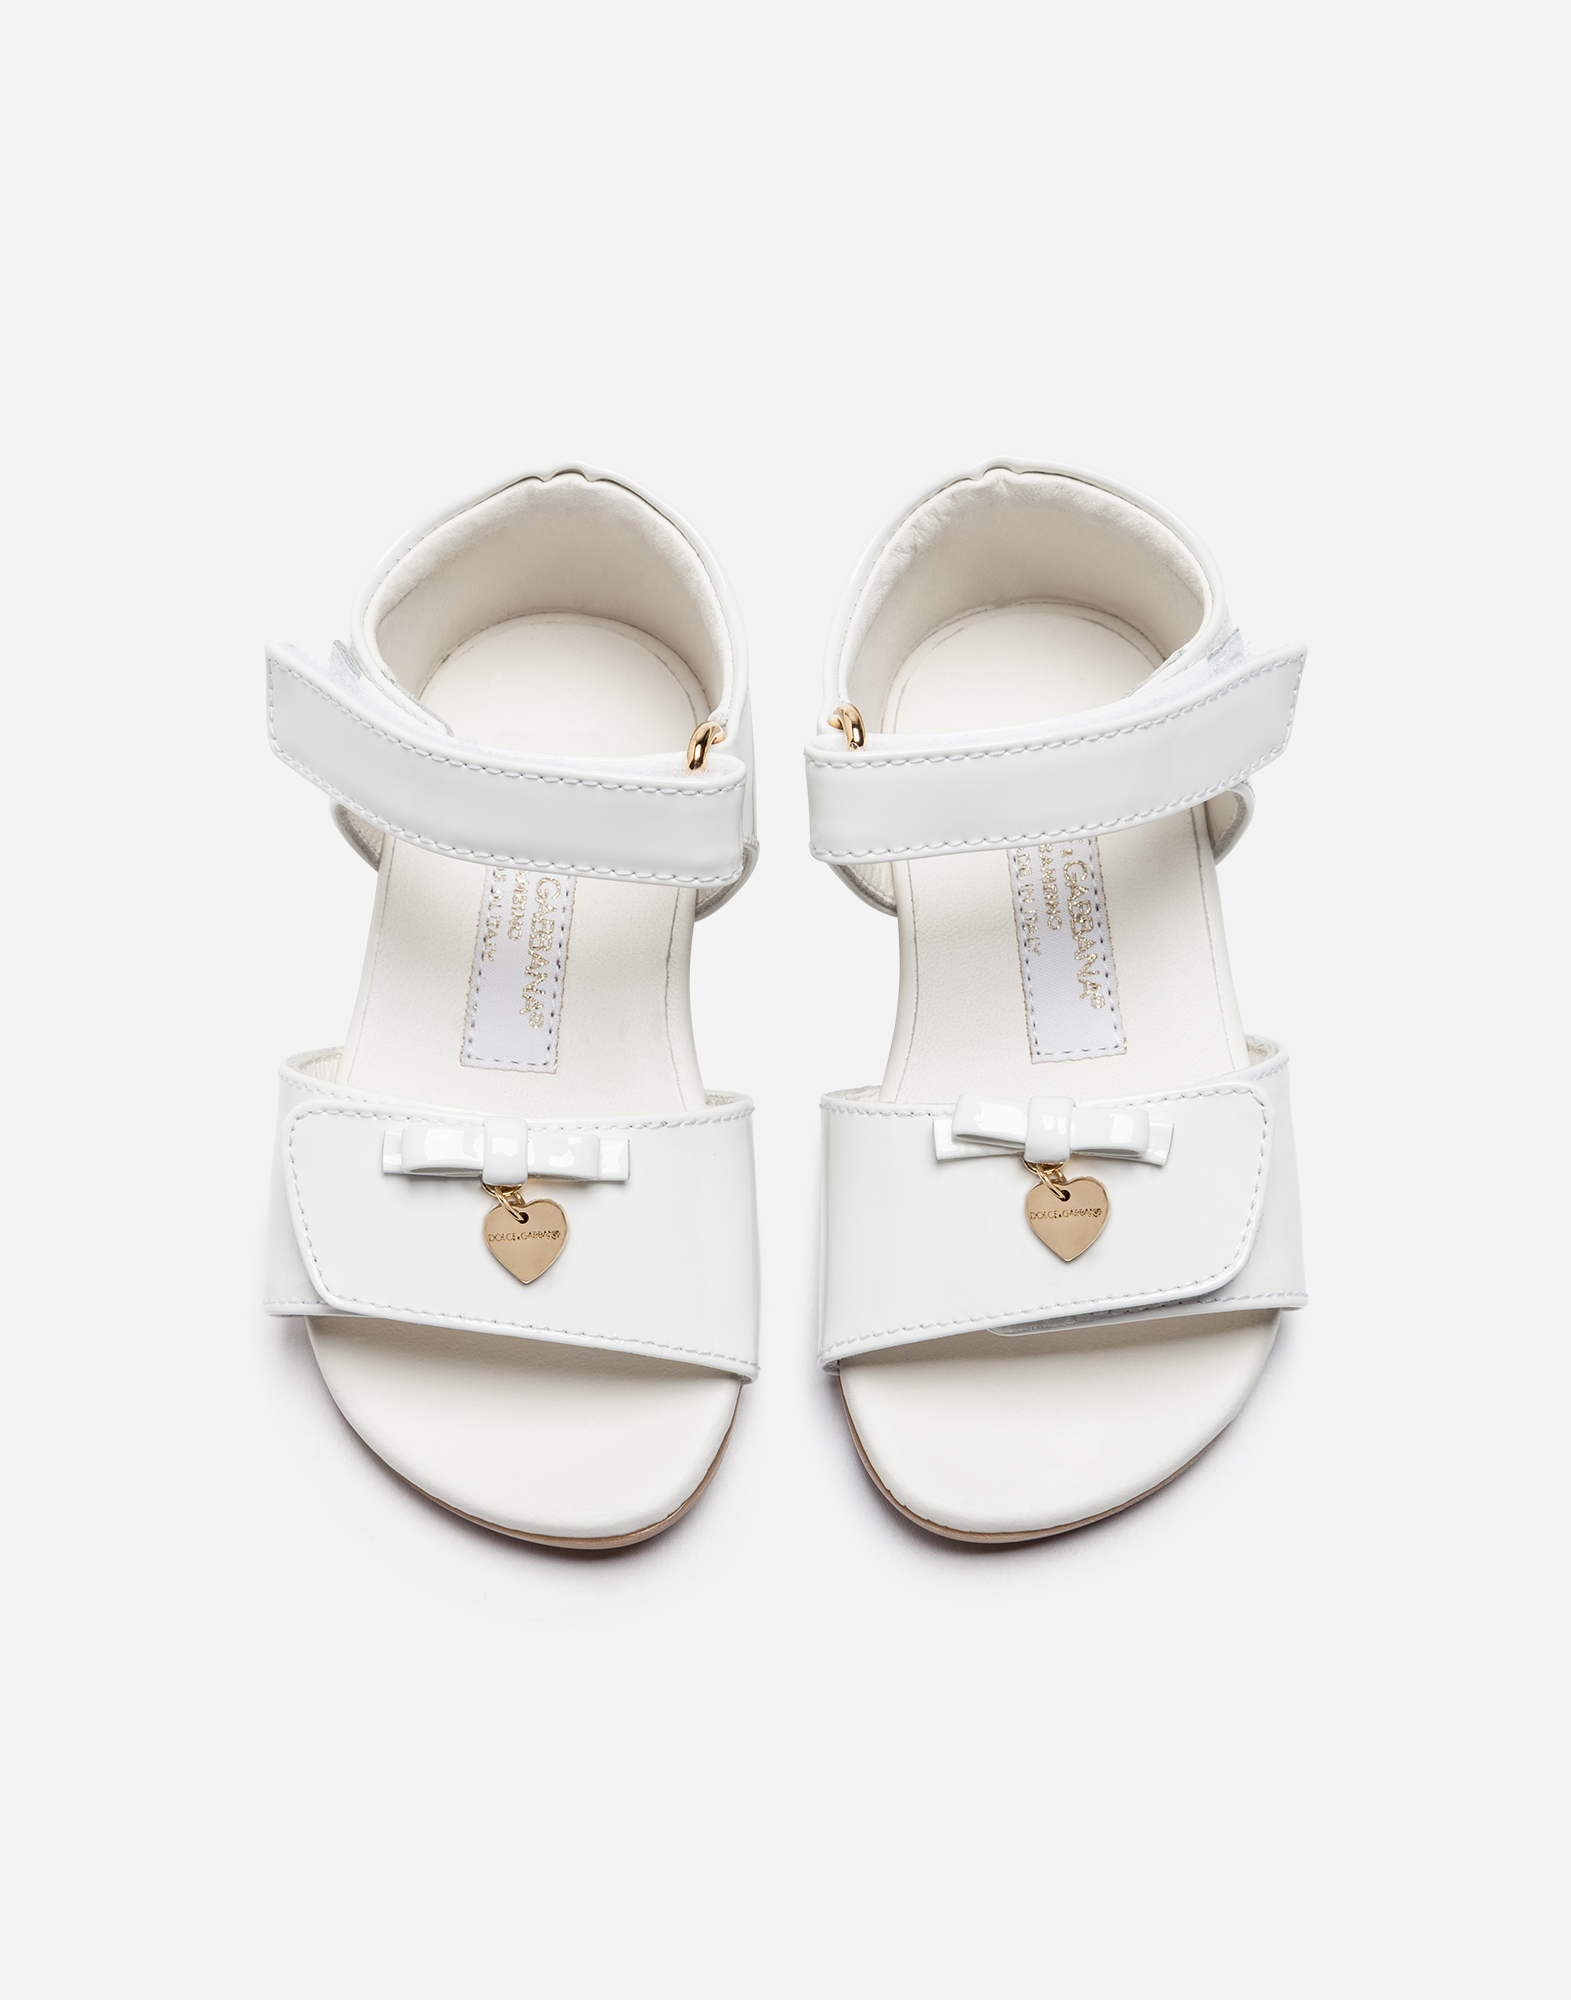 Dolce&Gabbana FIRST STEPS SANDALS IN PATENT LEATHER WITH BOW